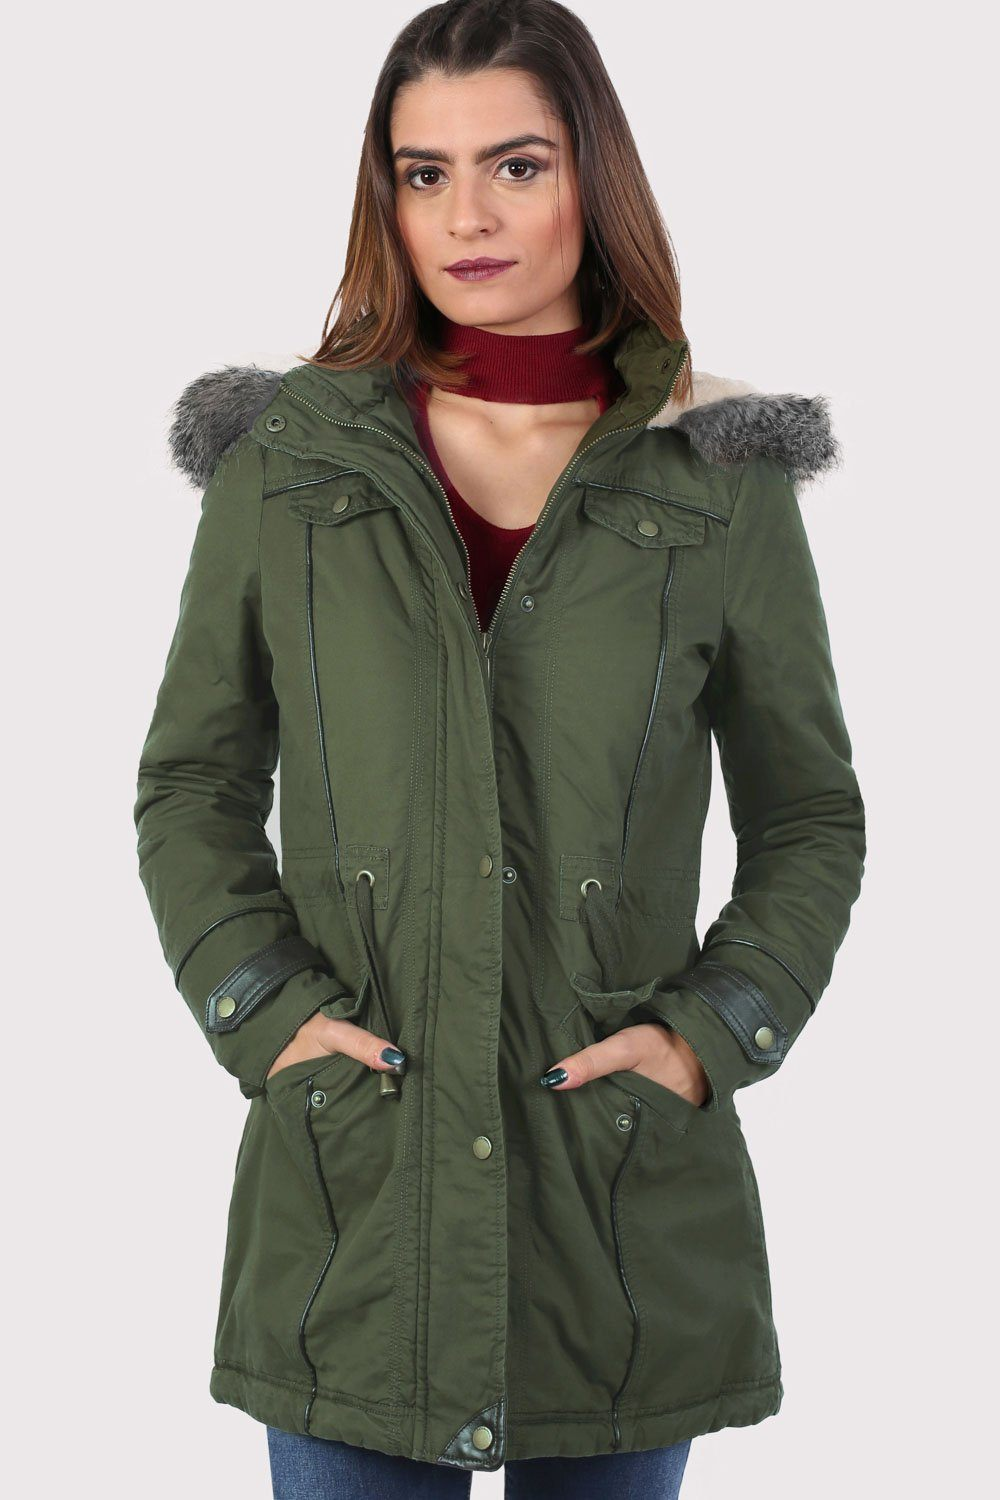 PU Trim Faux Fur Trim Hood Parka Coat in Khaki Green 1